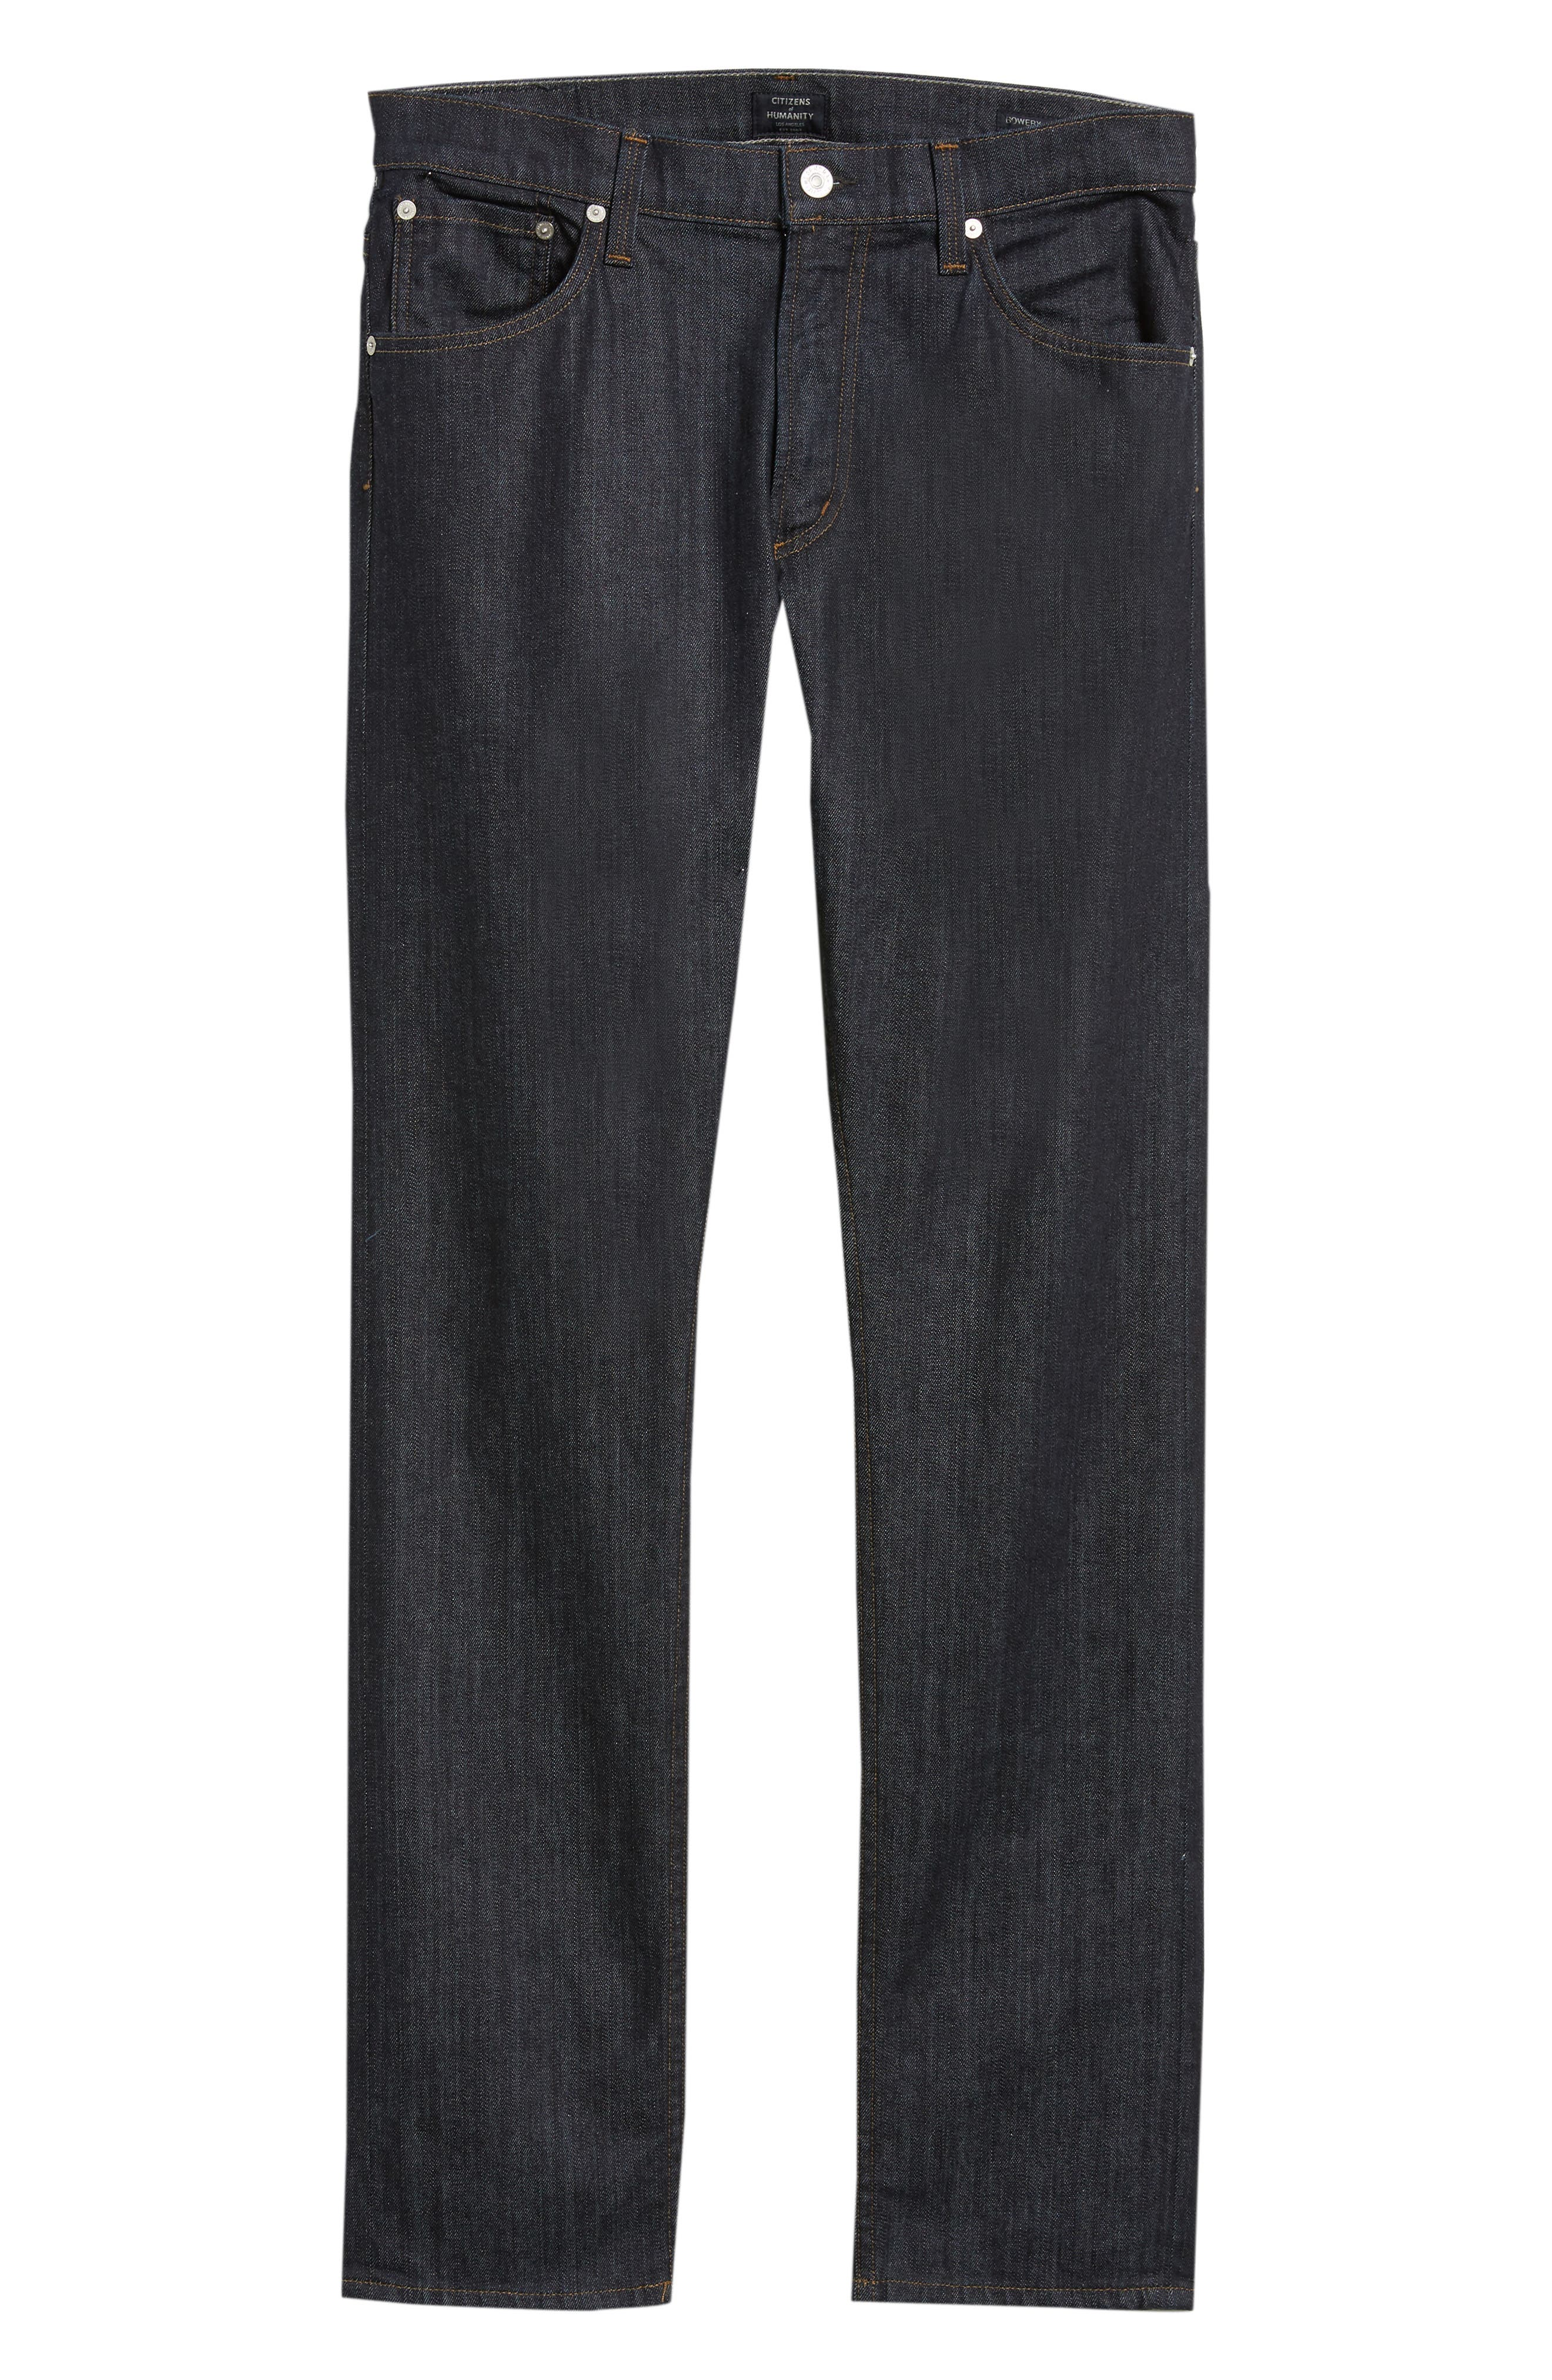 Bowery Slim Fit Jeans,                             Alternate thumbnail 6, color,                             SUPERIOR